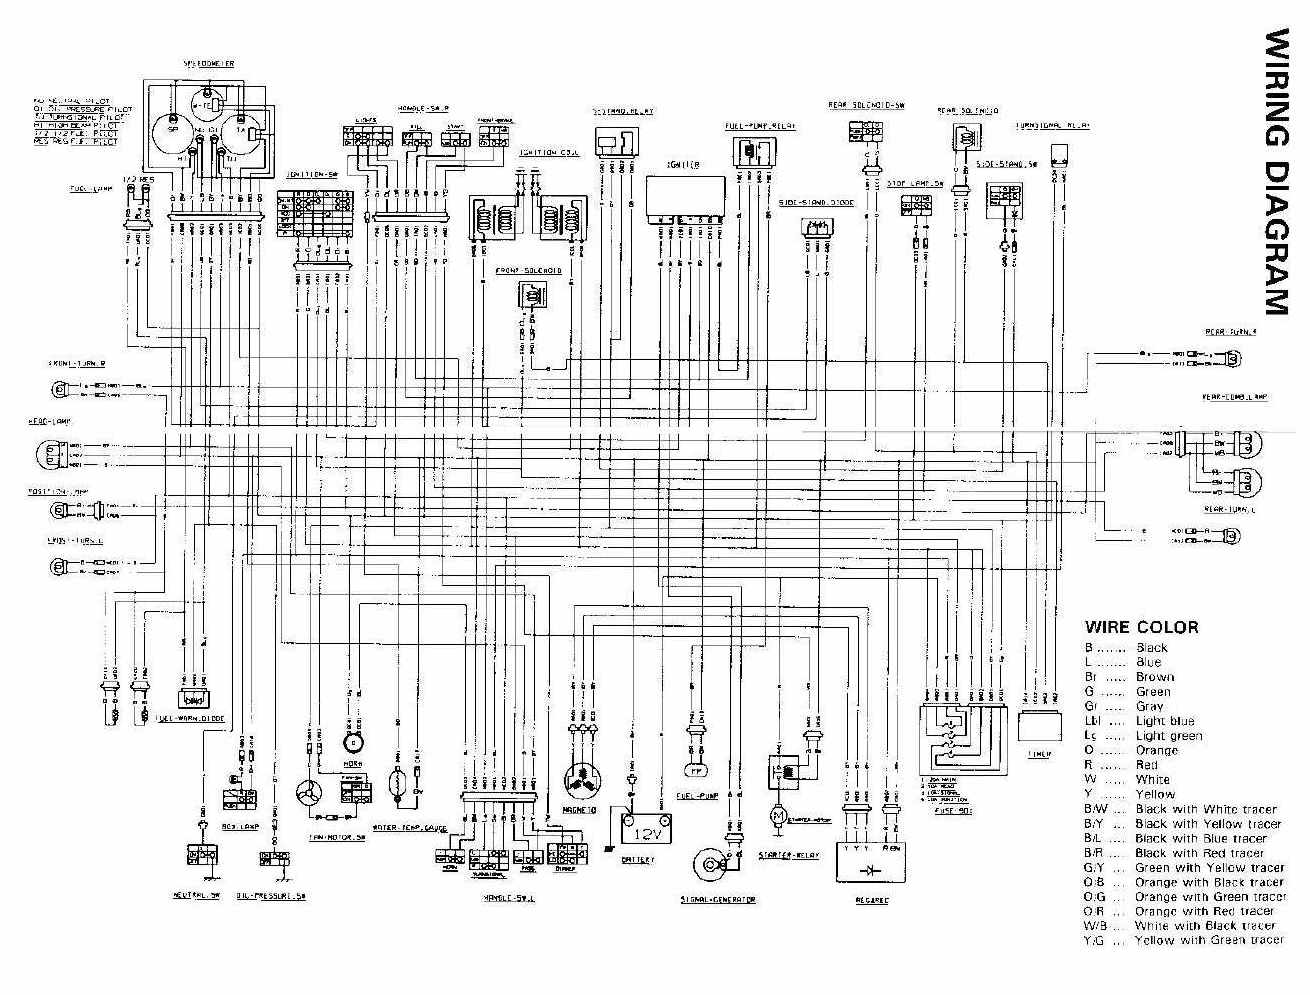 Suzuki Vz800 Engine Diagram Suzuki GZ250 Engine Diagram